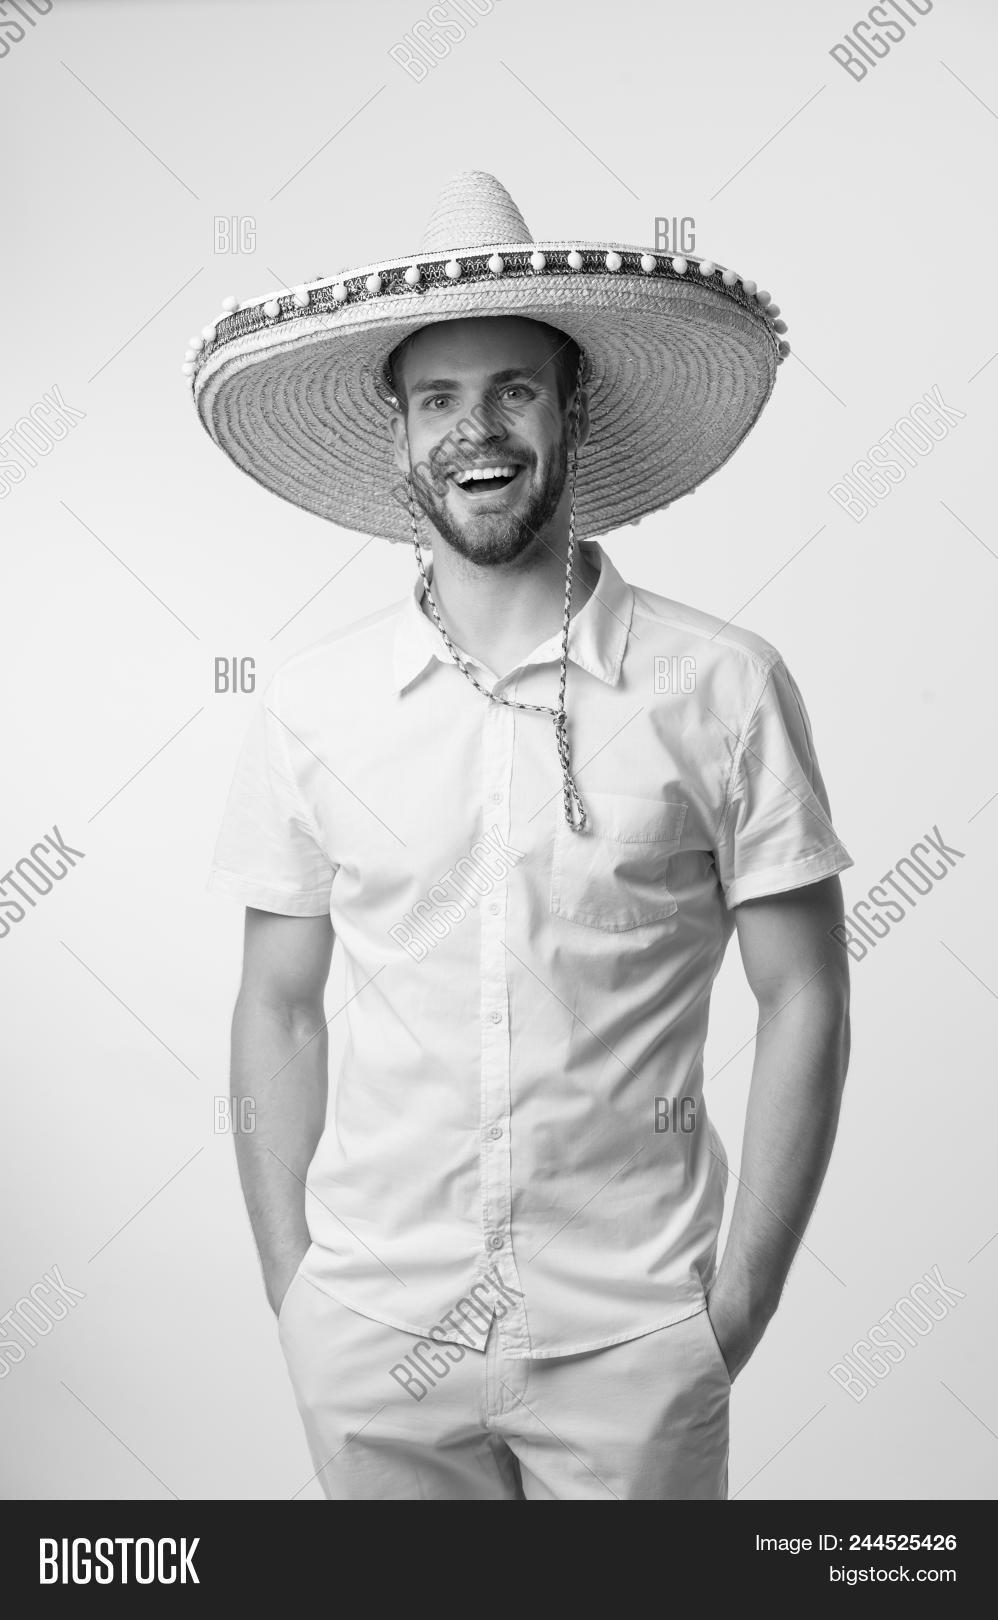 955c79722a4 Happy Man Smile In Sombrero Hat Isolated On White Background